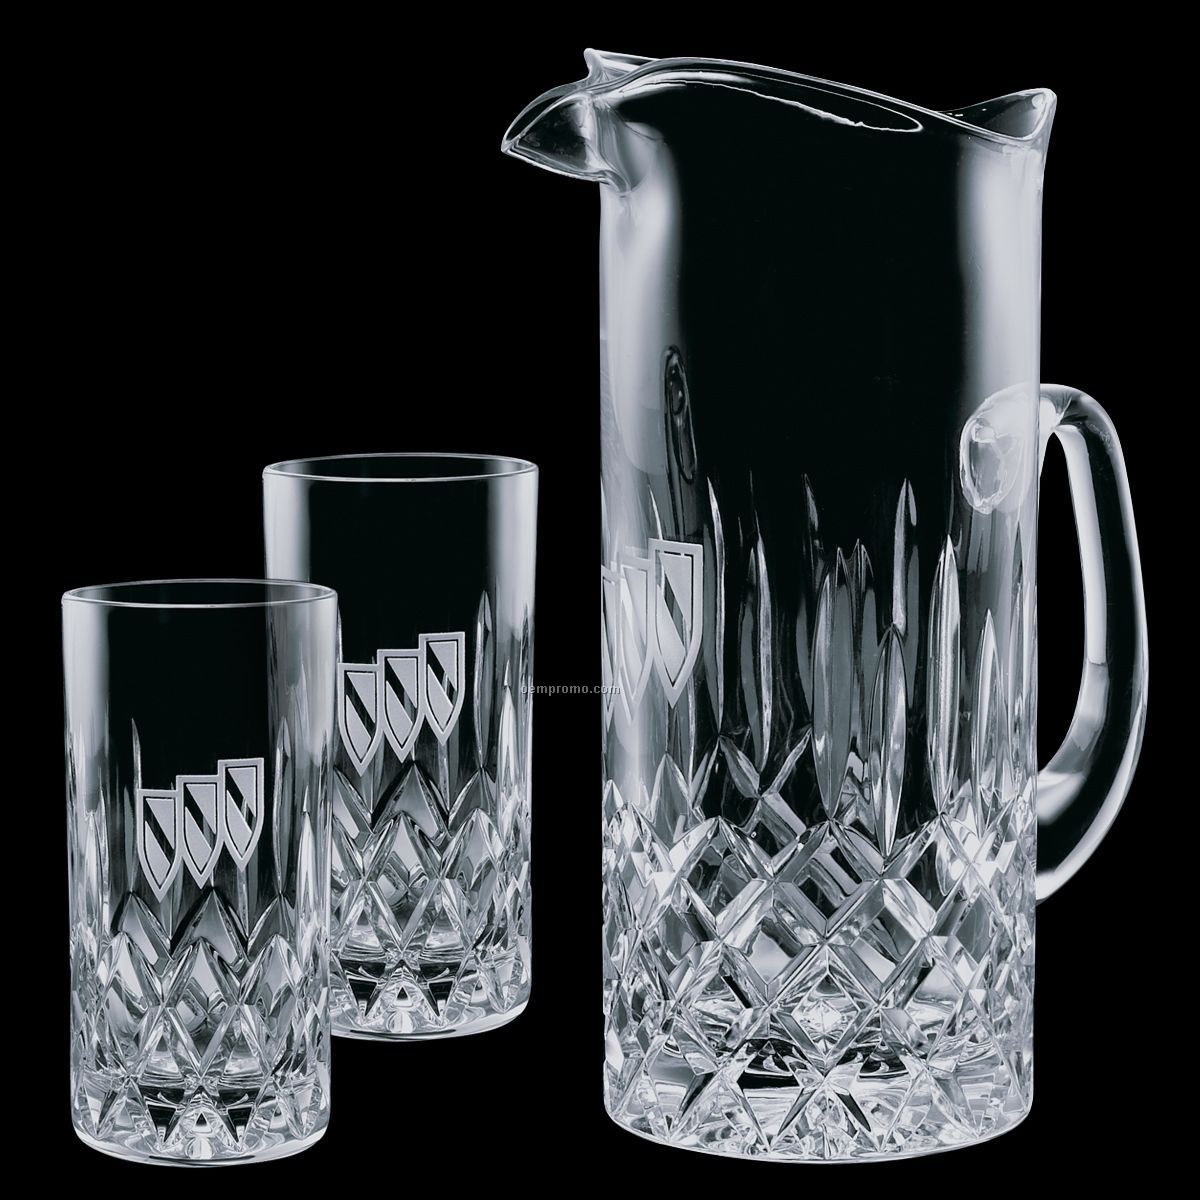 30 Oz. Crystal Denby Pitcher With 2 Hiball Glasses